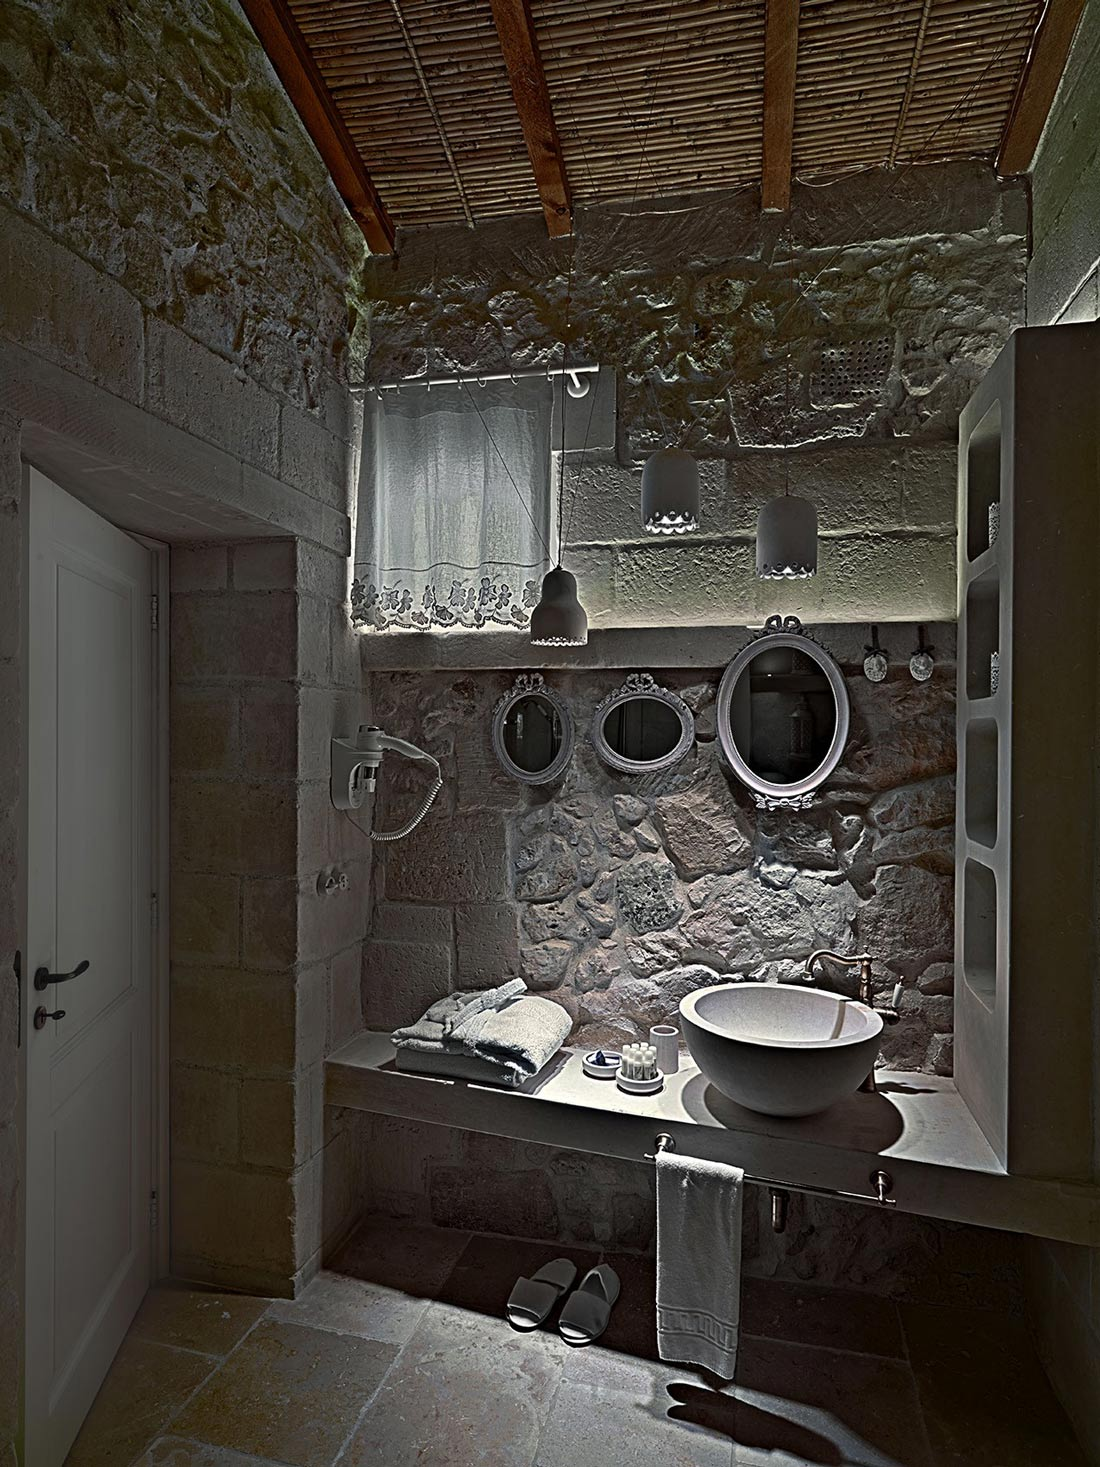 Bathroom Mirrors, Relais Masseria Capasa Hotel in Martano, Italy